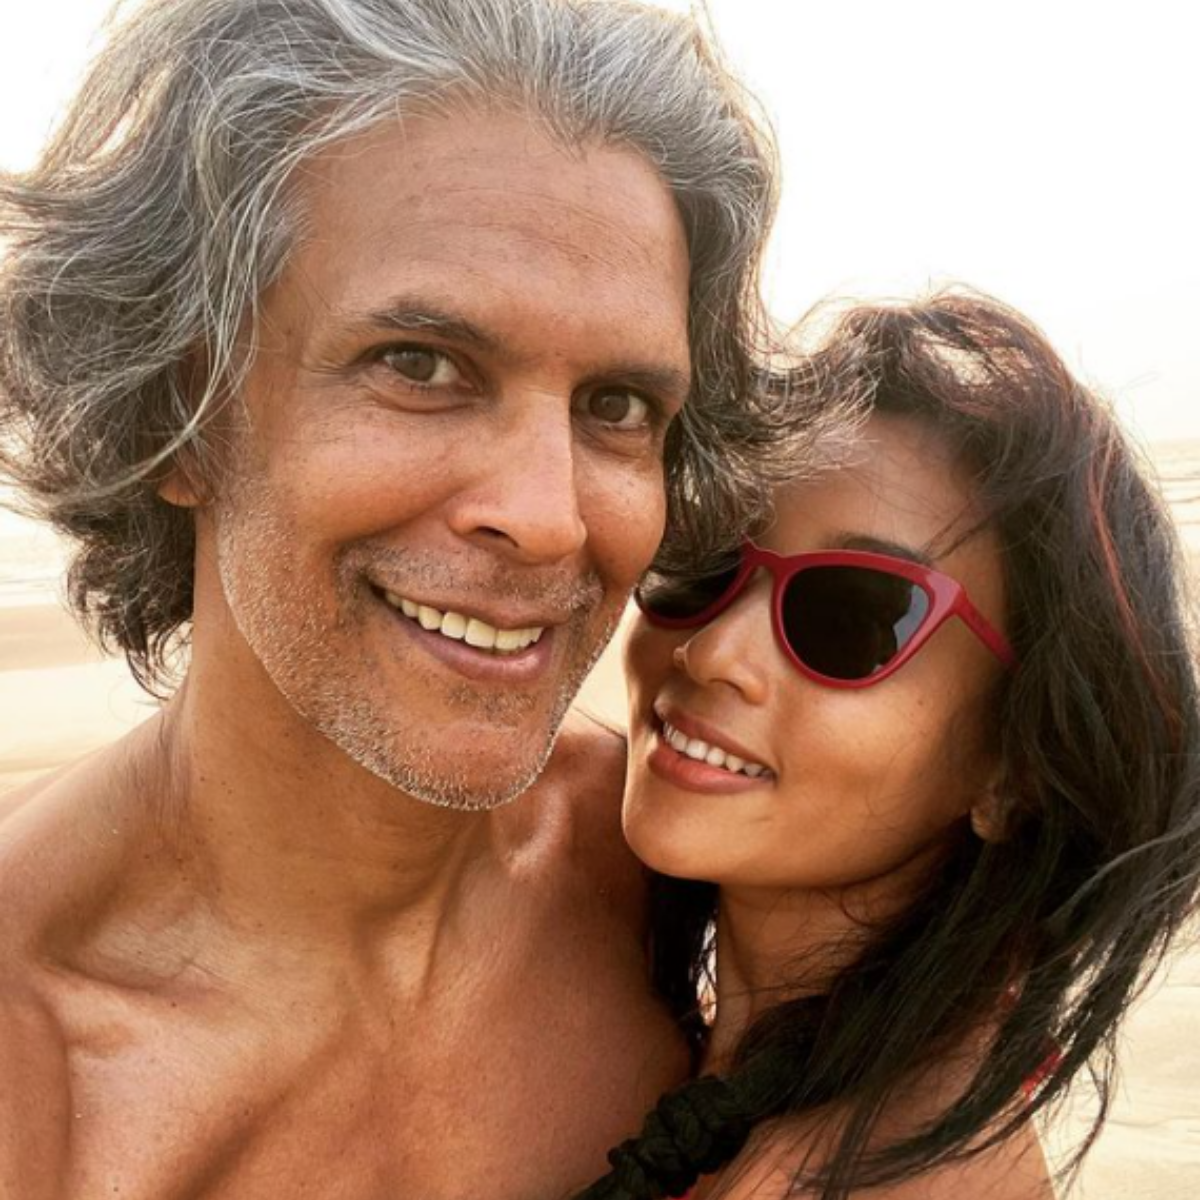 Milind Soman and Ankita Konwar's pictures